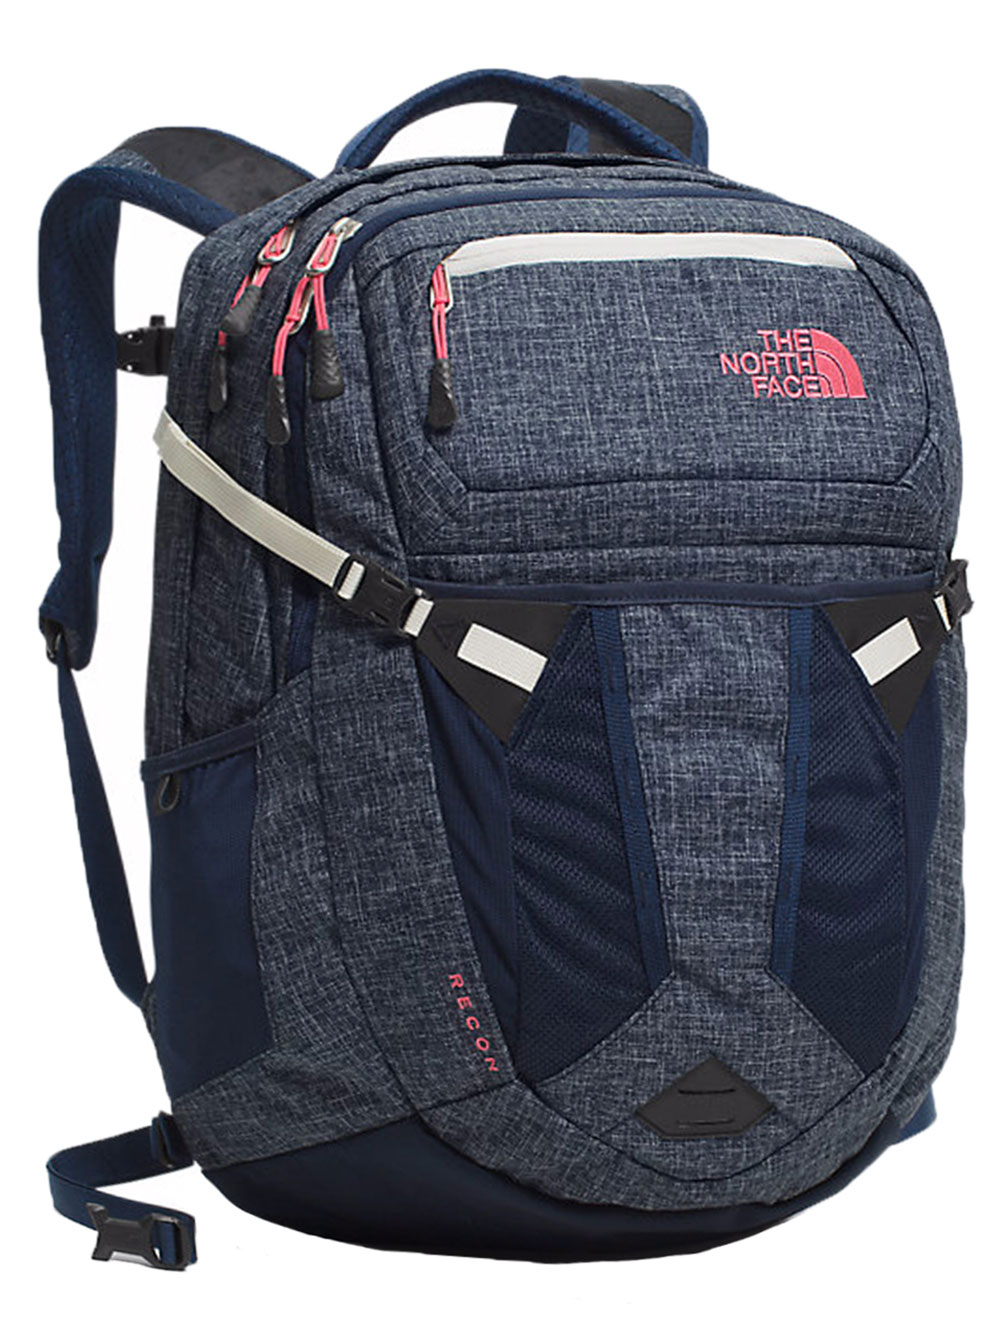 The North Face Recon Backpack - Women's - cosmic blue heather/calypso coral, one size